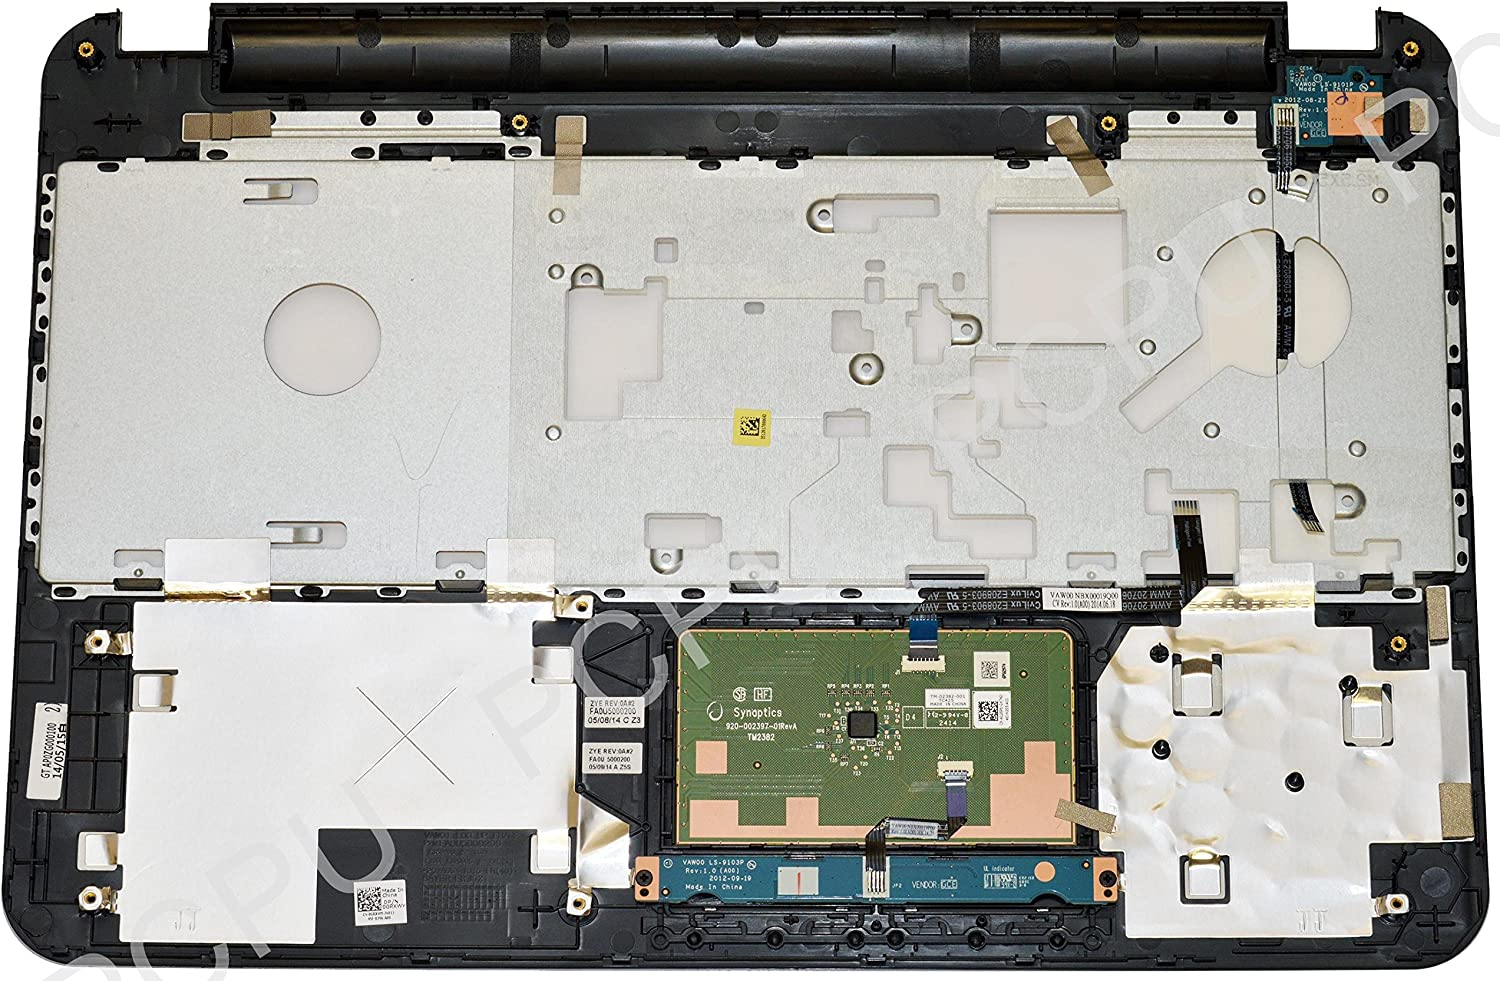 GRXWY New Dell Inspiron 15R 5537 15R-5537 Palmrest Touchpad Assembly